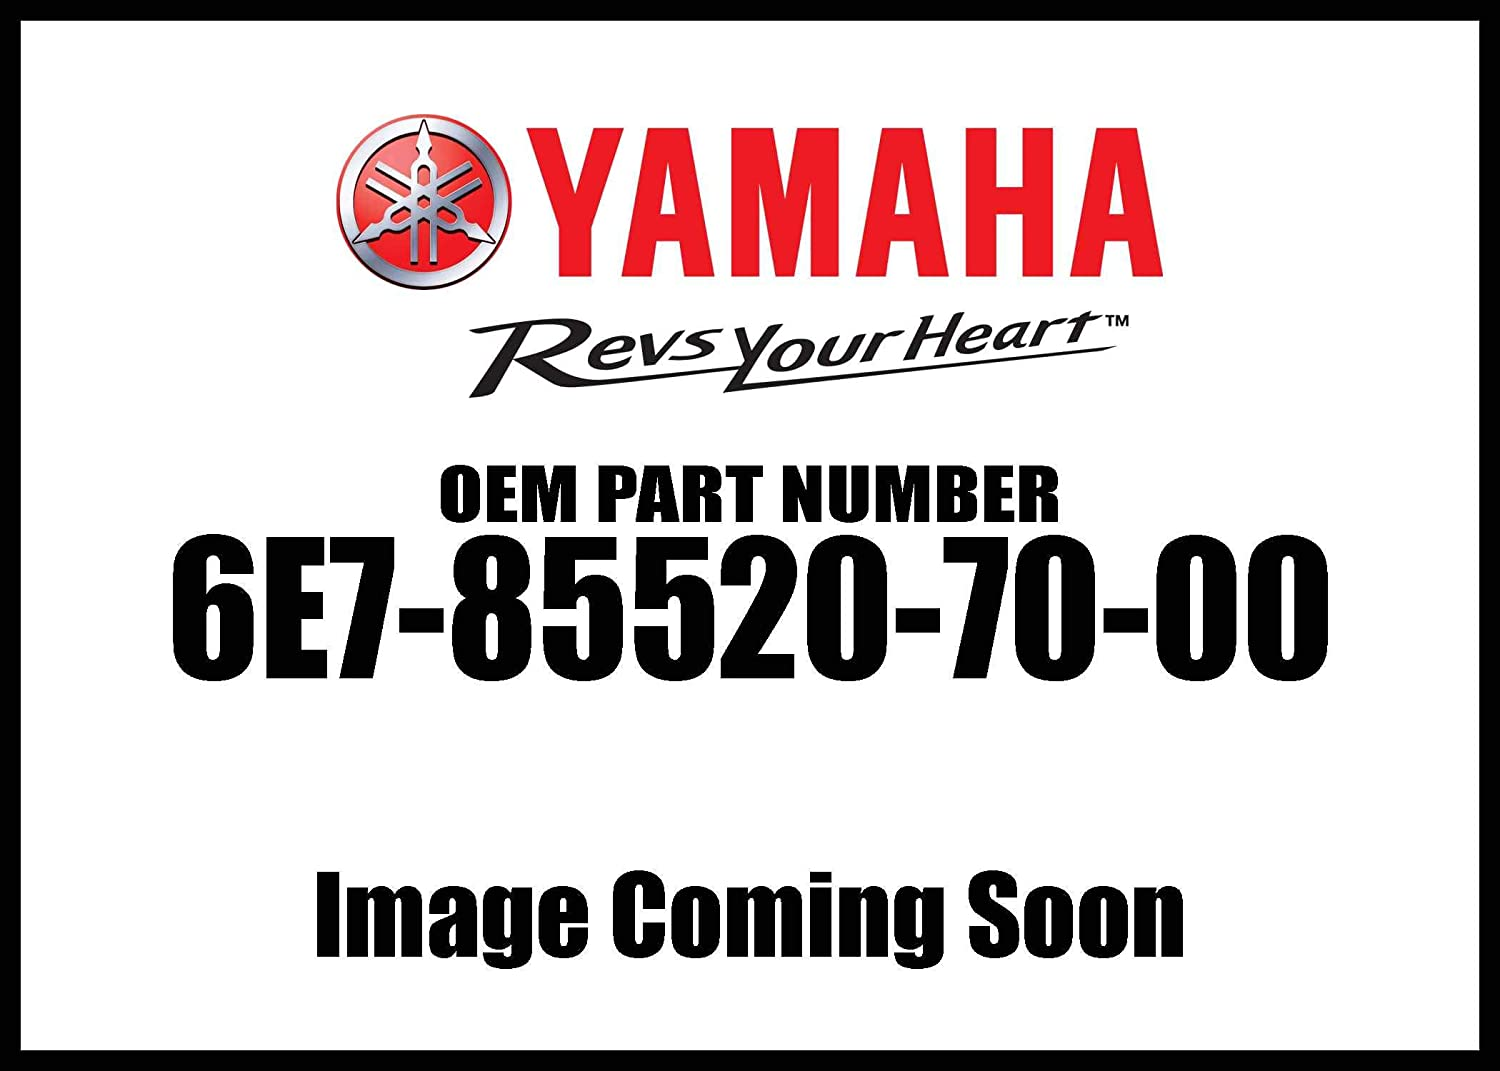 Yamaha Coil Charge 6E7-85520-70-00 New Oem